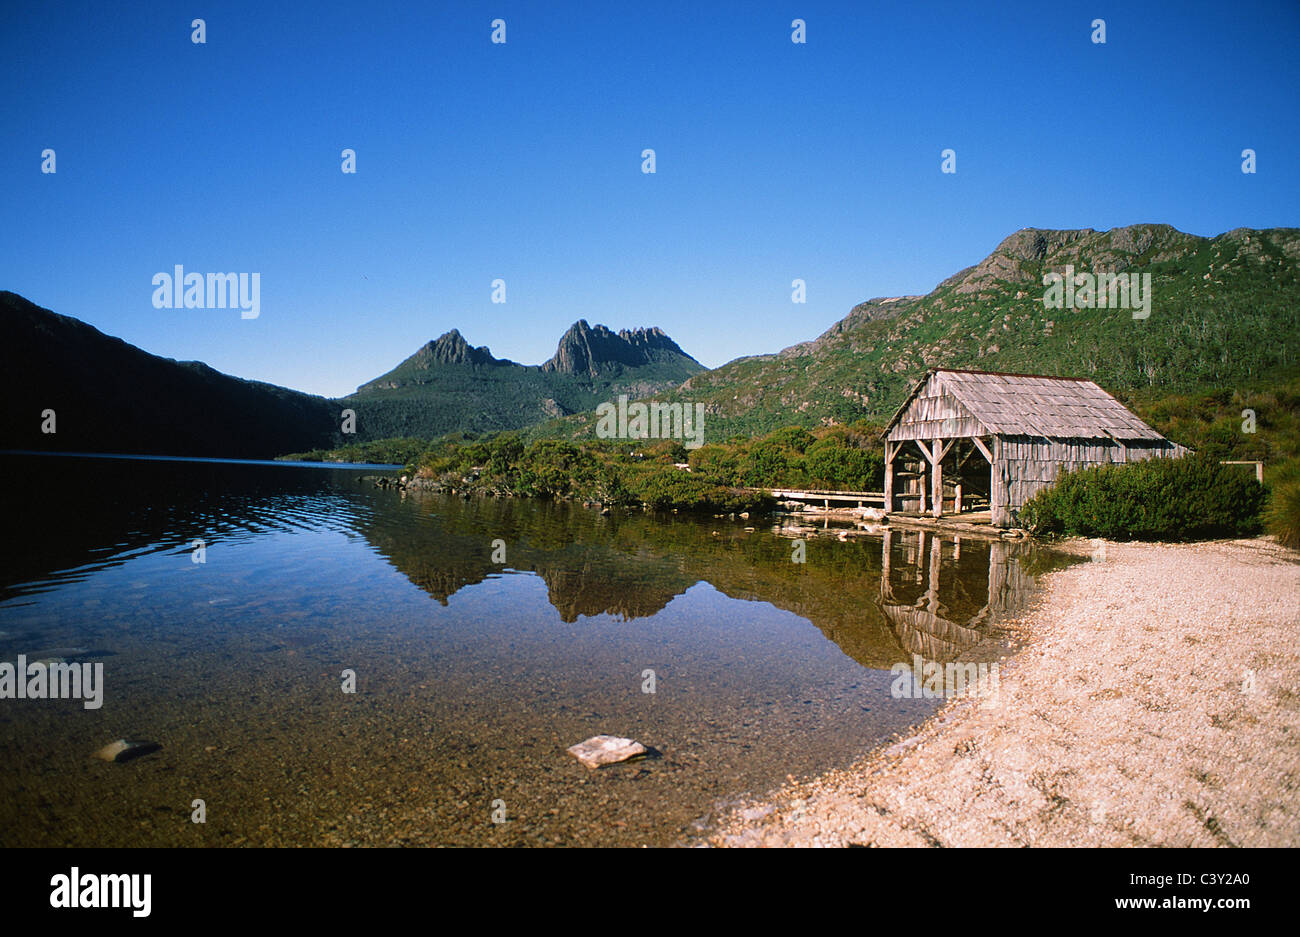 Cradle Mountain and boat shed at Lake Dove in the Cradle Mountain National Park of Tasmania, Australia - Stock Image